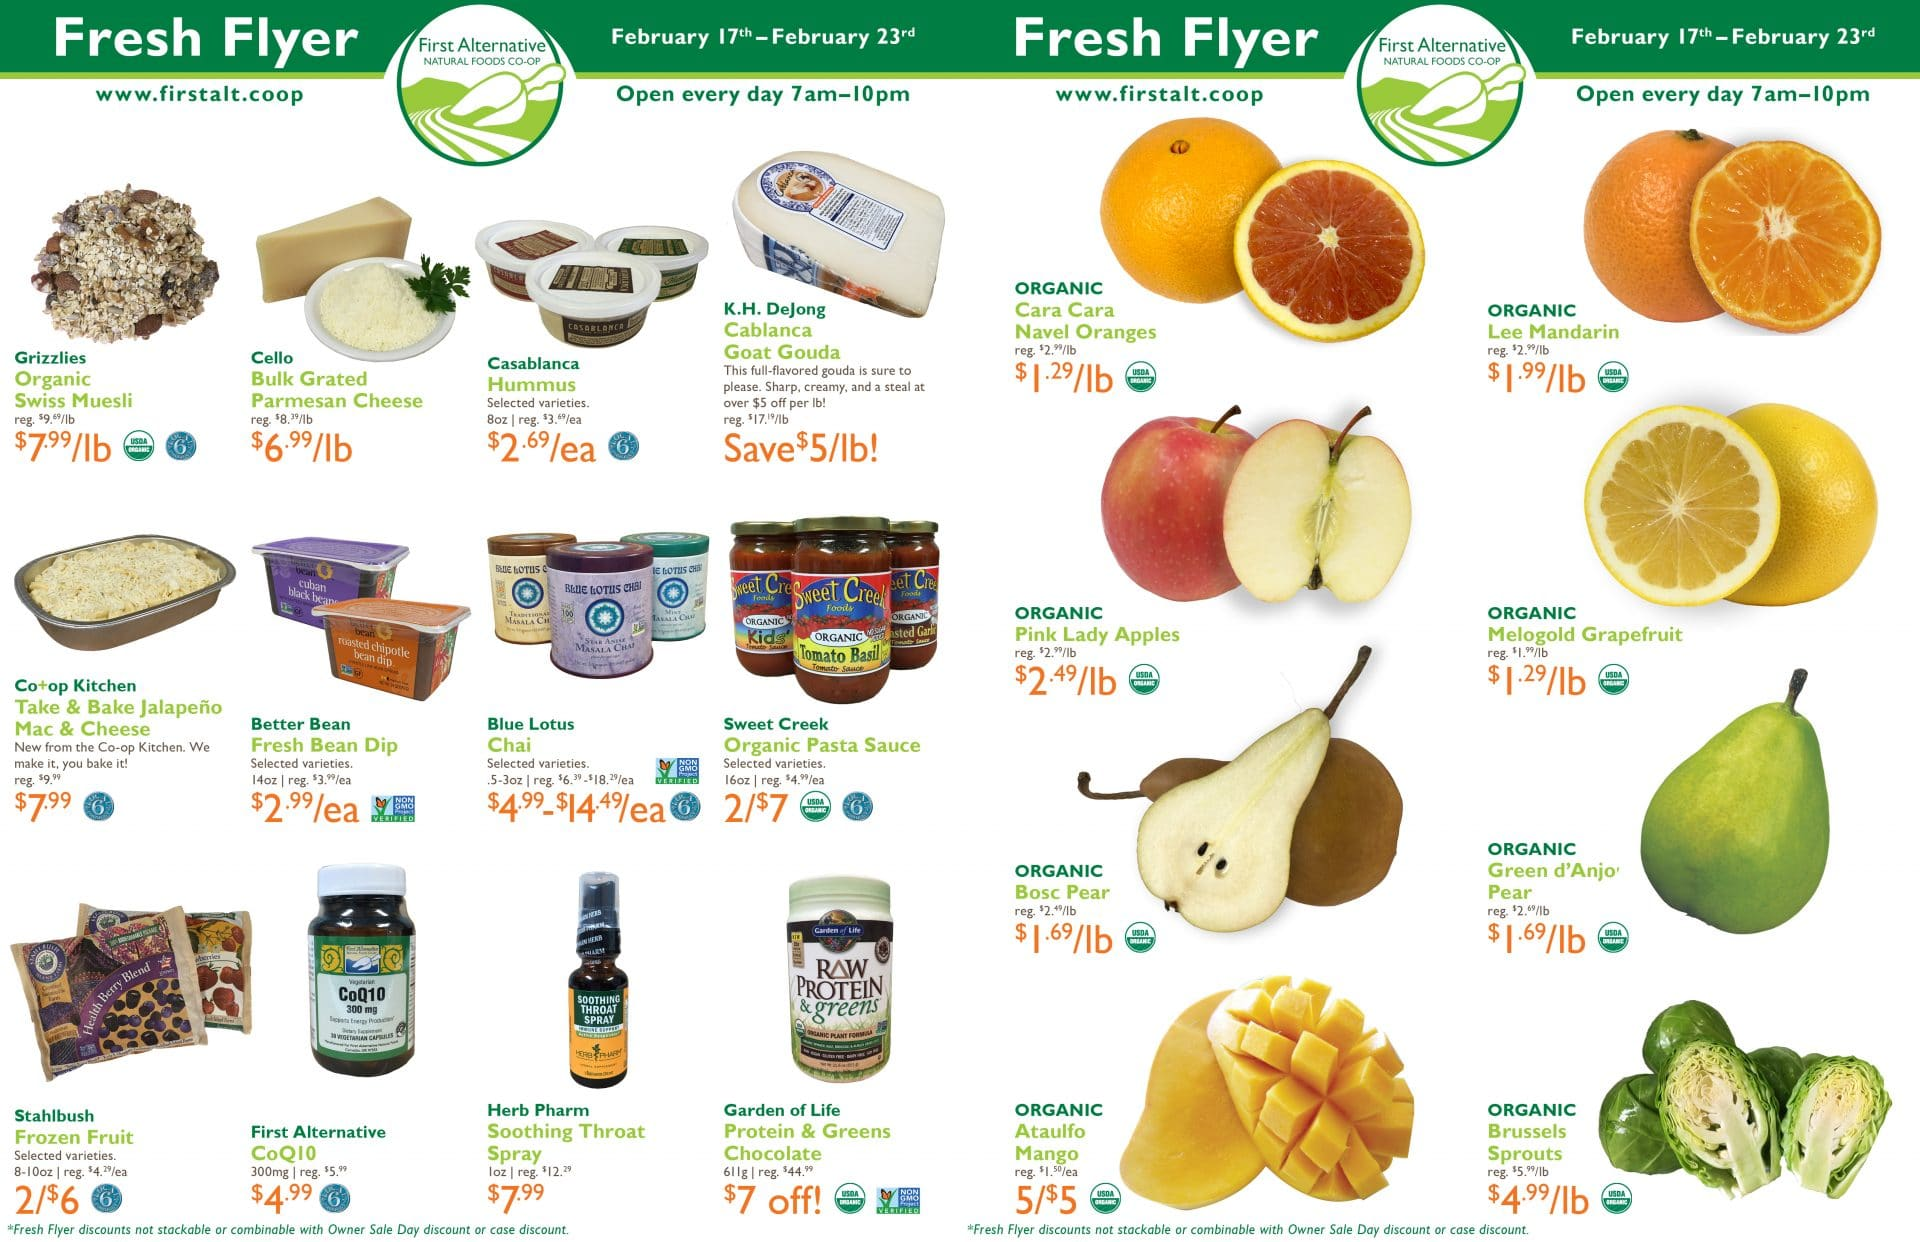 First Alternative Co-op Fresh Flyer February 17 - February 23